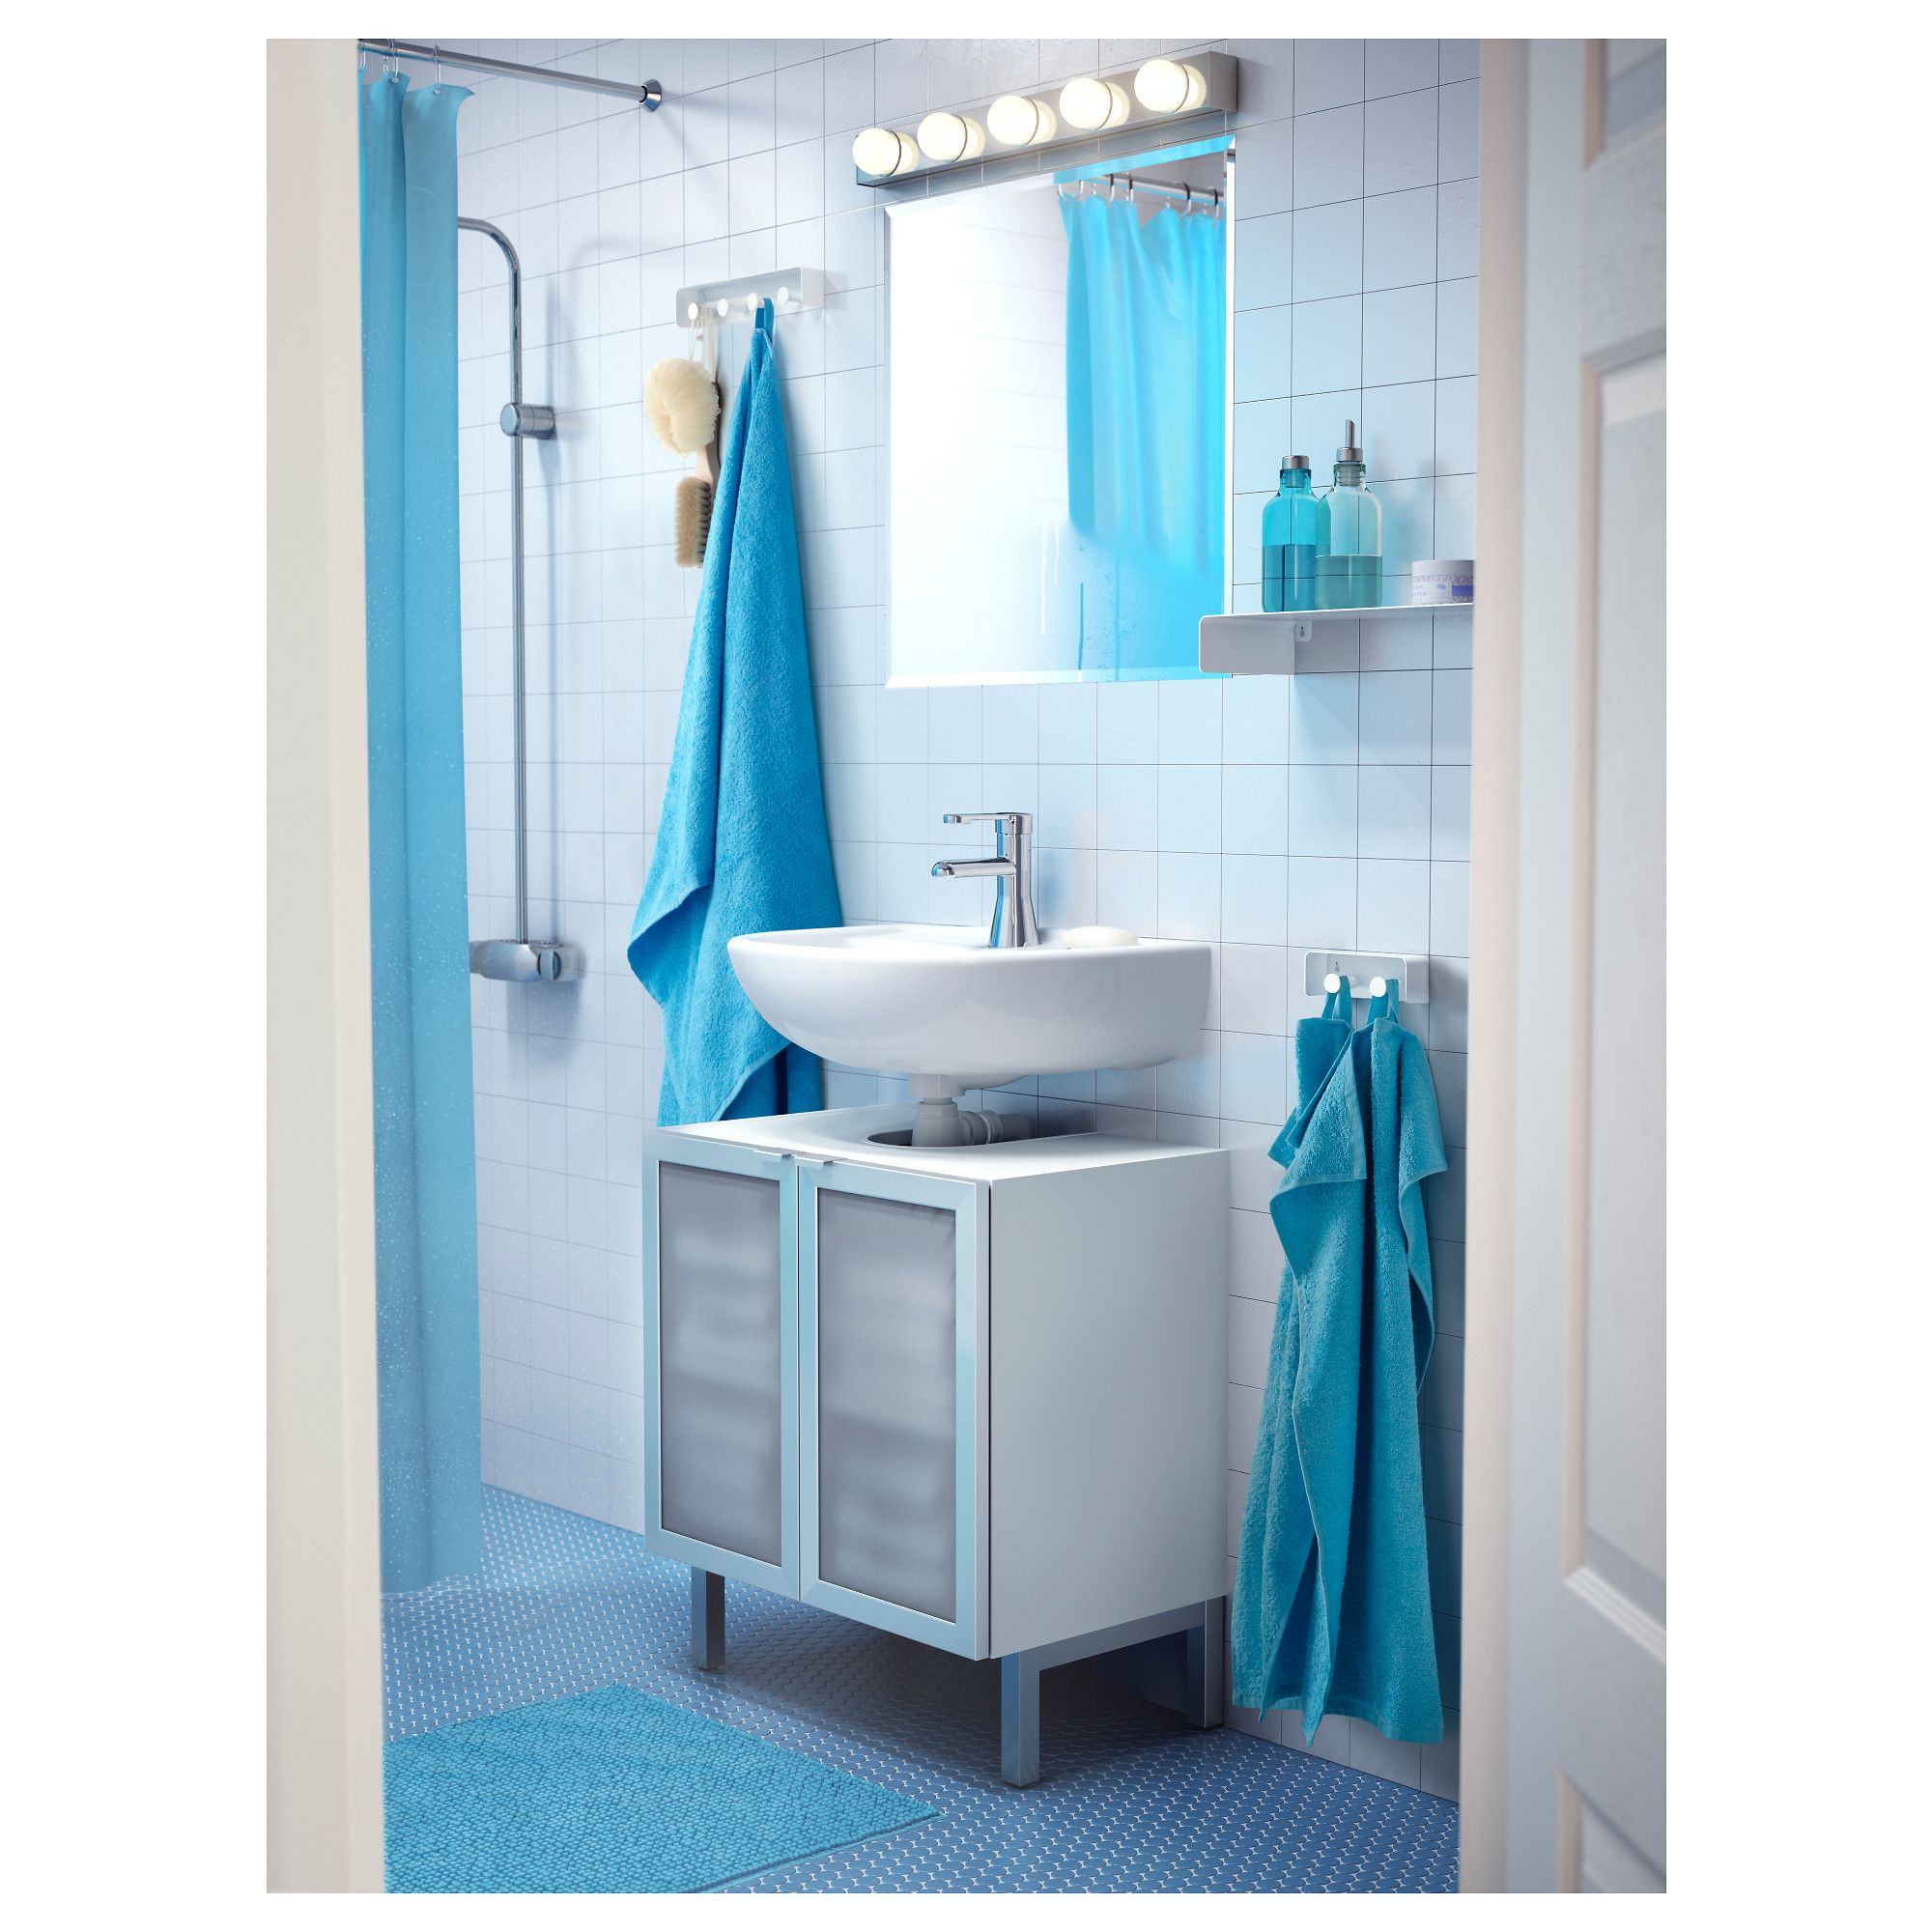 Towel Rack Enudden White In 2019 Products Meuble Salle